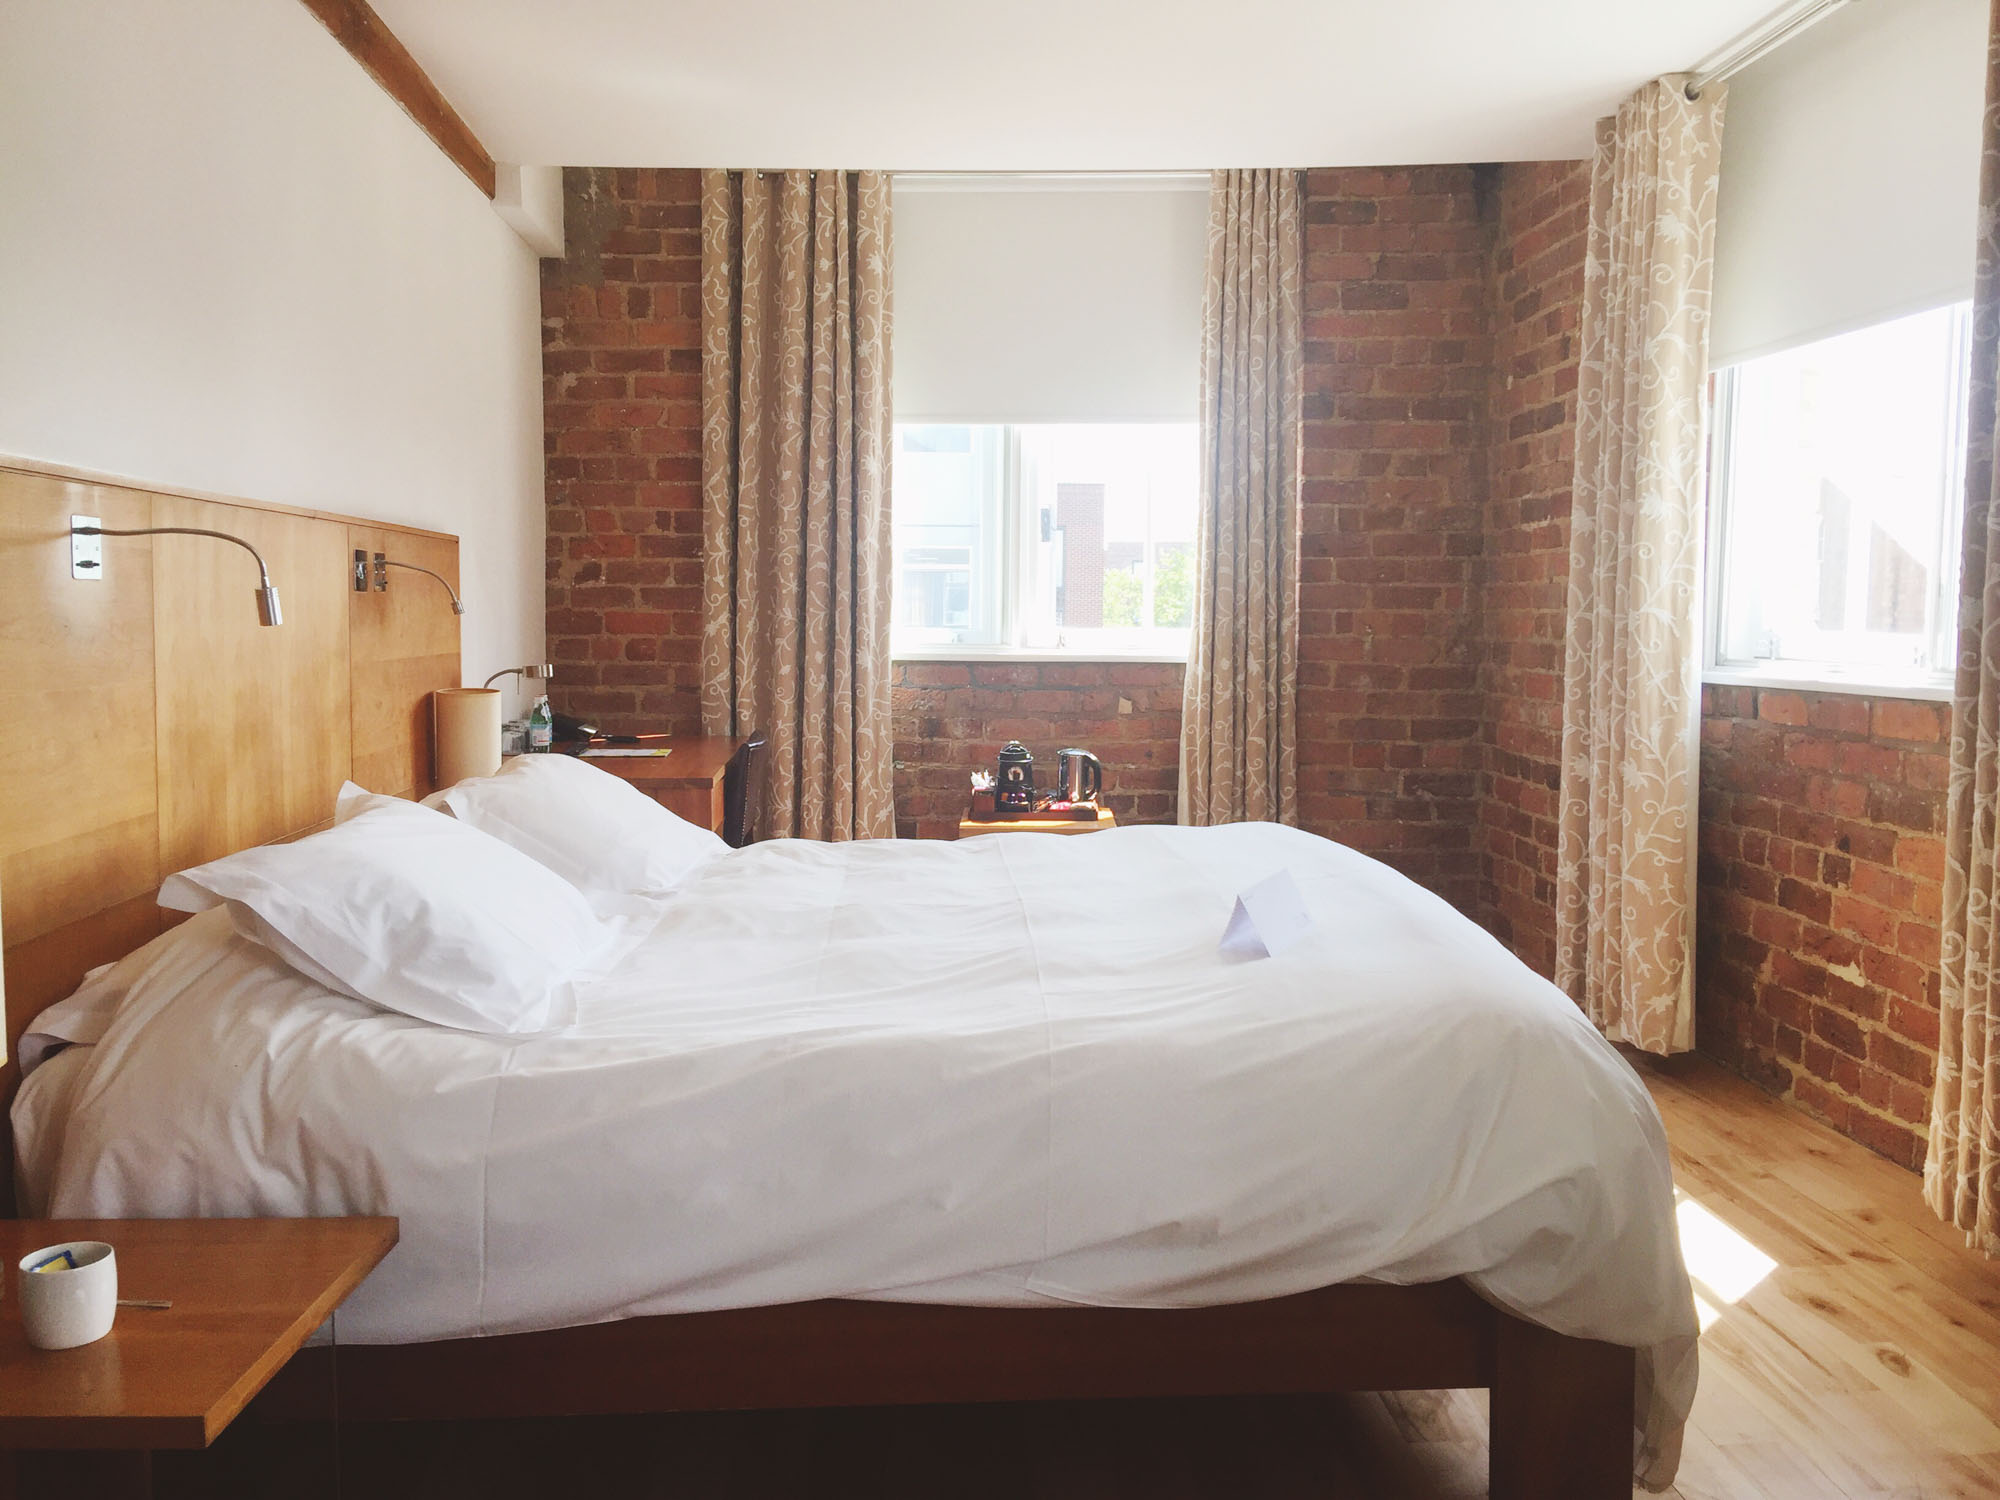 Best hotels in Liverpoo l- Hope Street Hotel